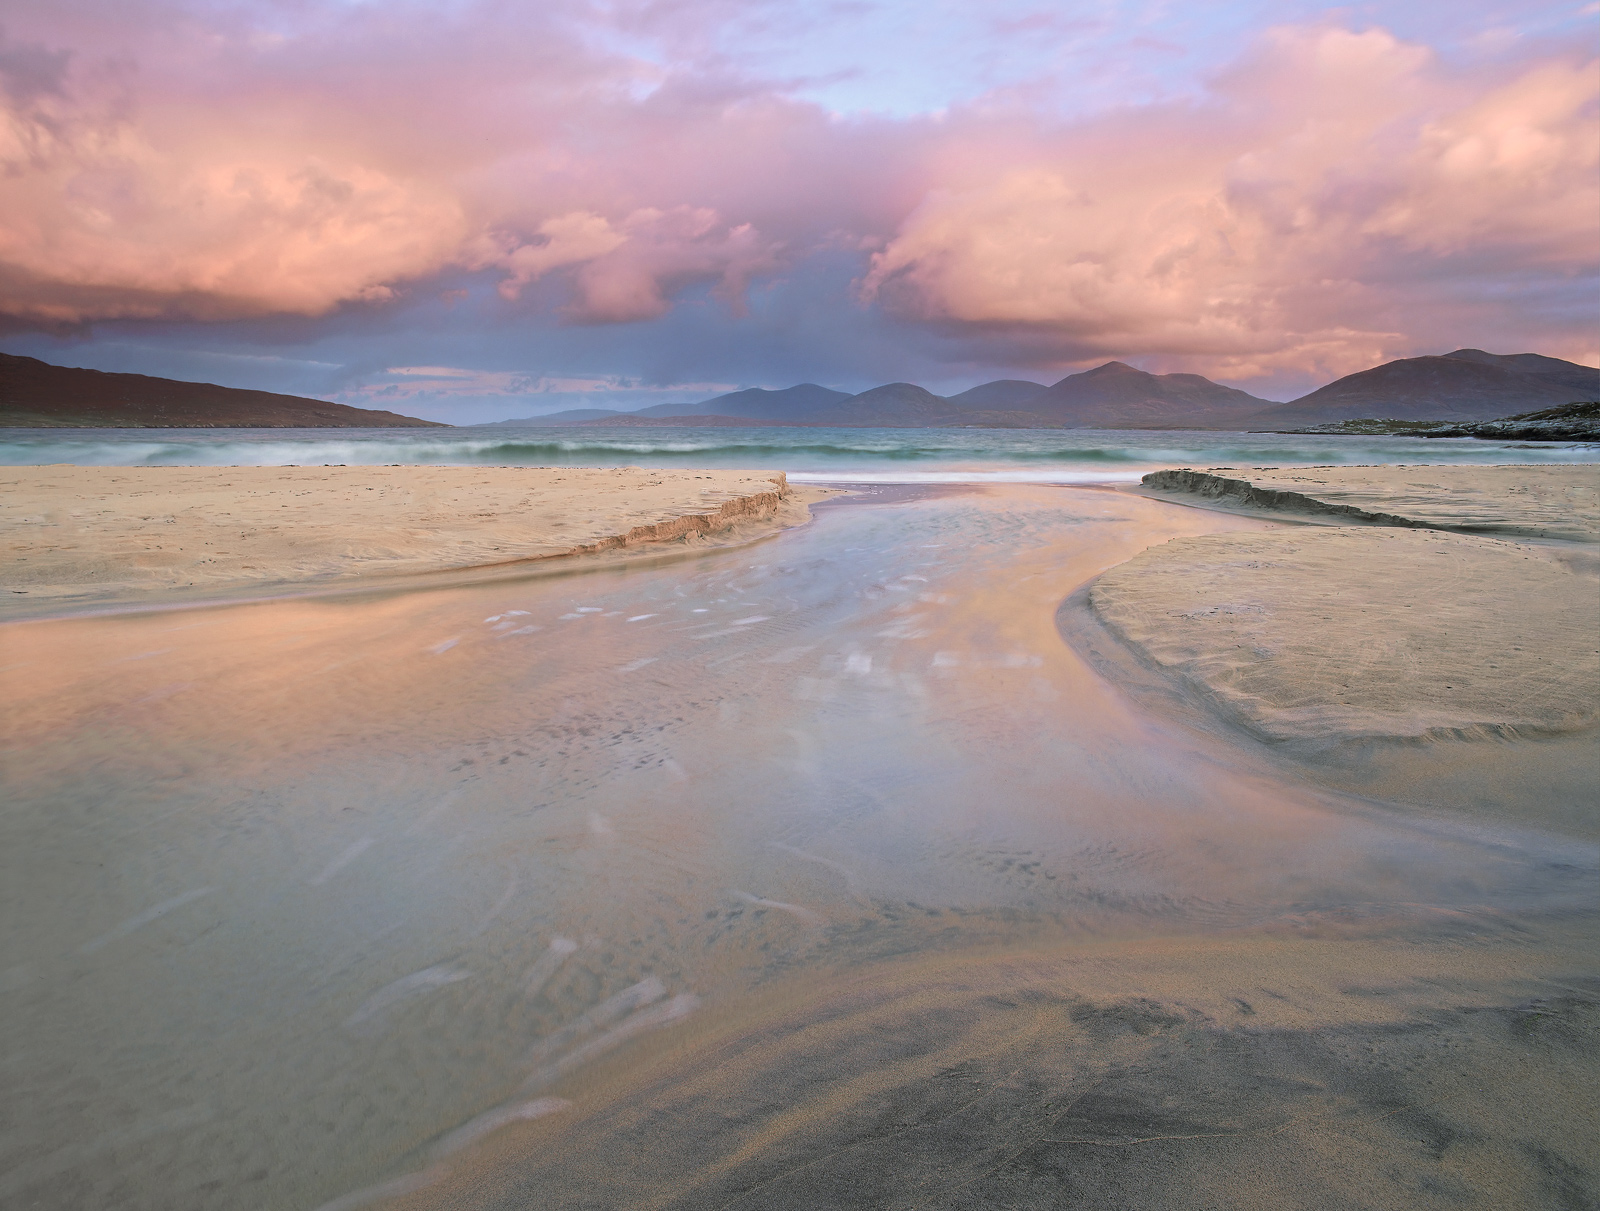 The west coast of Harris is probably not on the face of it a great location for a sunrise but of course in the right circumstances...